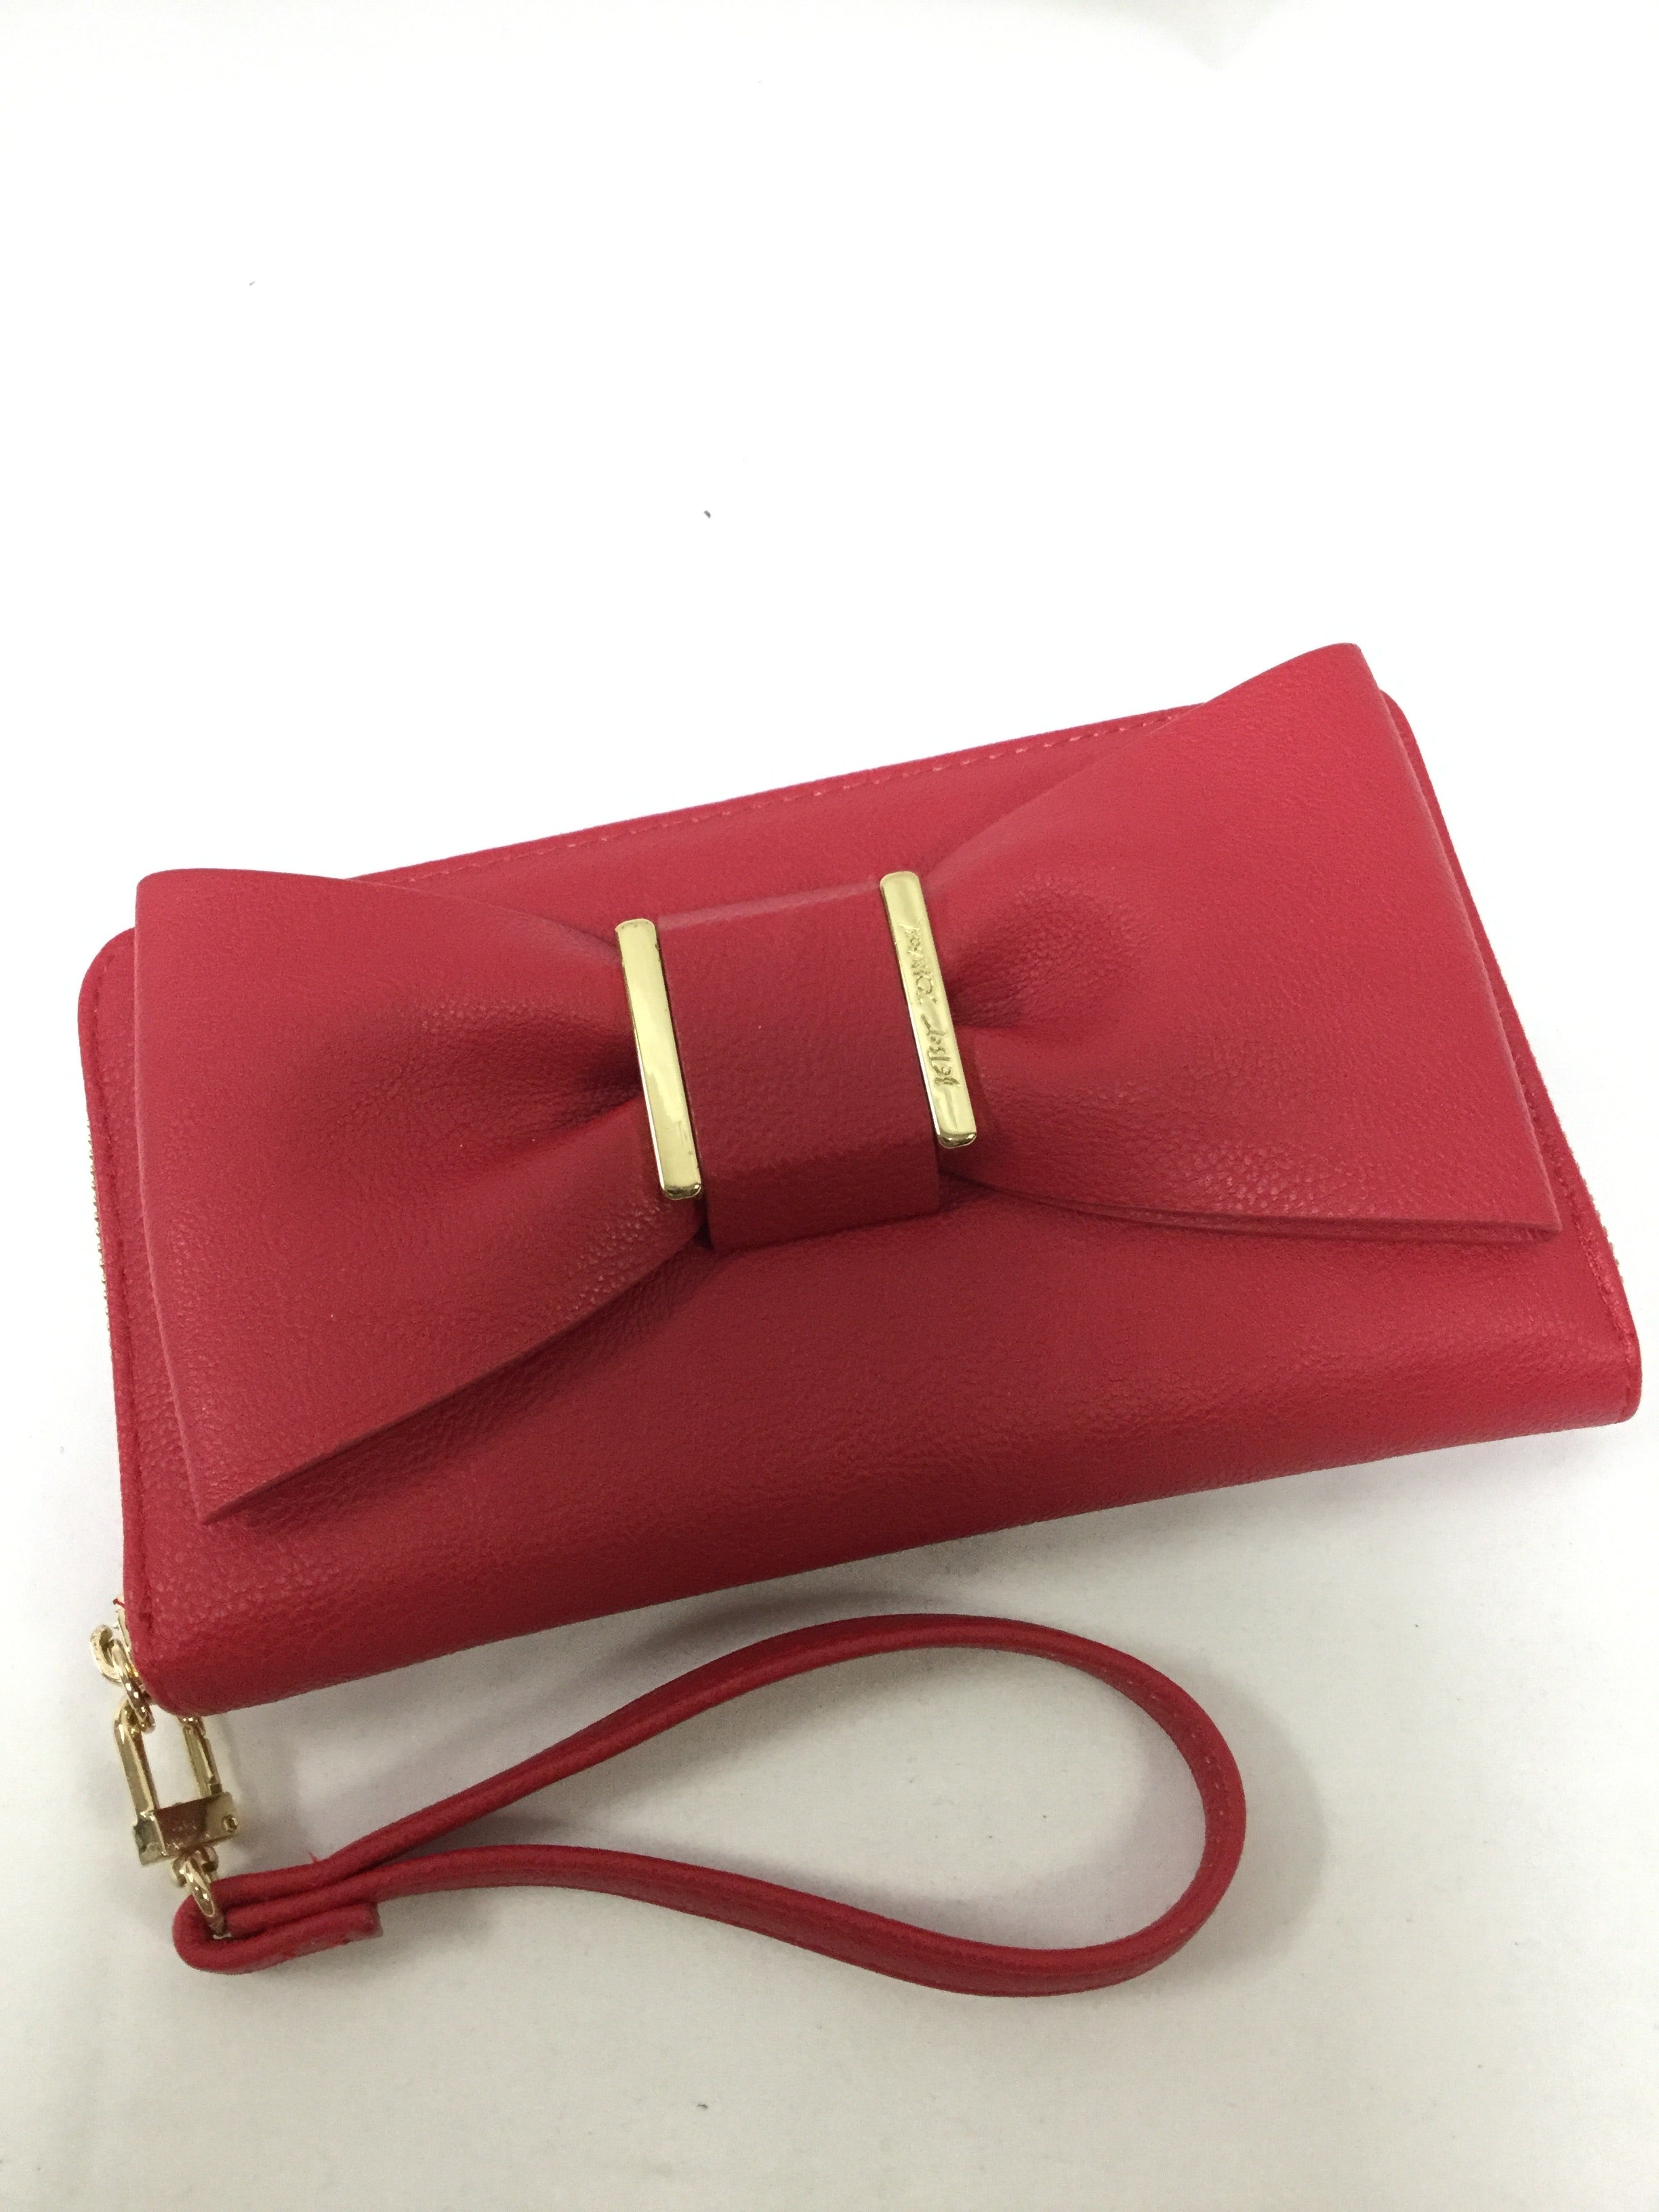 Primary Photo - BRAND: BETSEY JOHNSON <BR>STYLE: WALLET <BR>COLOR: RED <BR>SIZE: LARGE <BR>SKU: 155-15599-235818